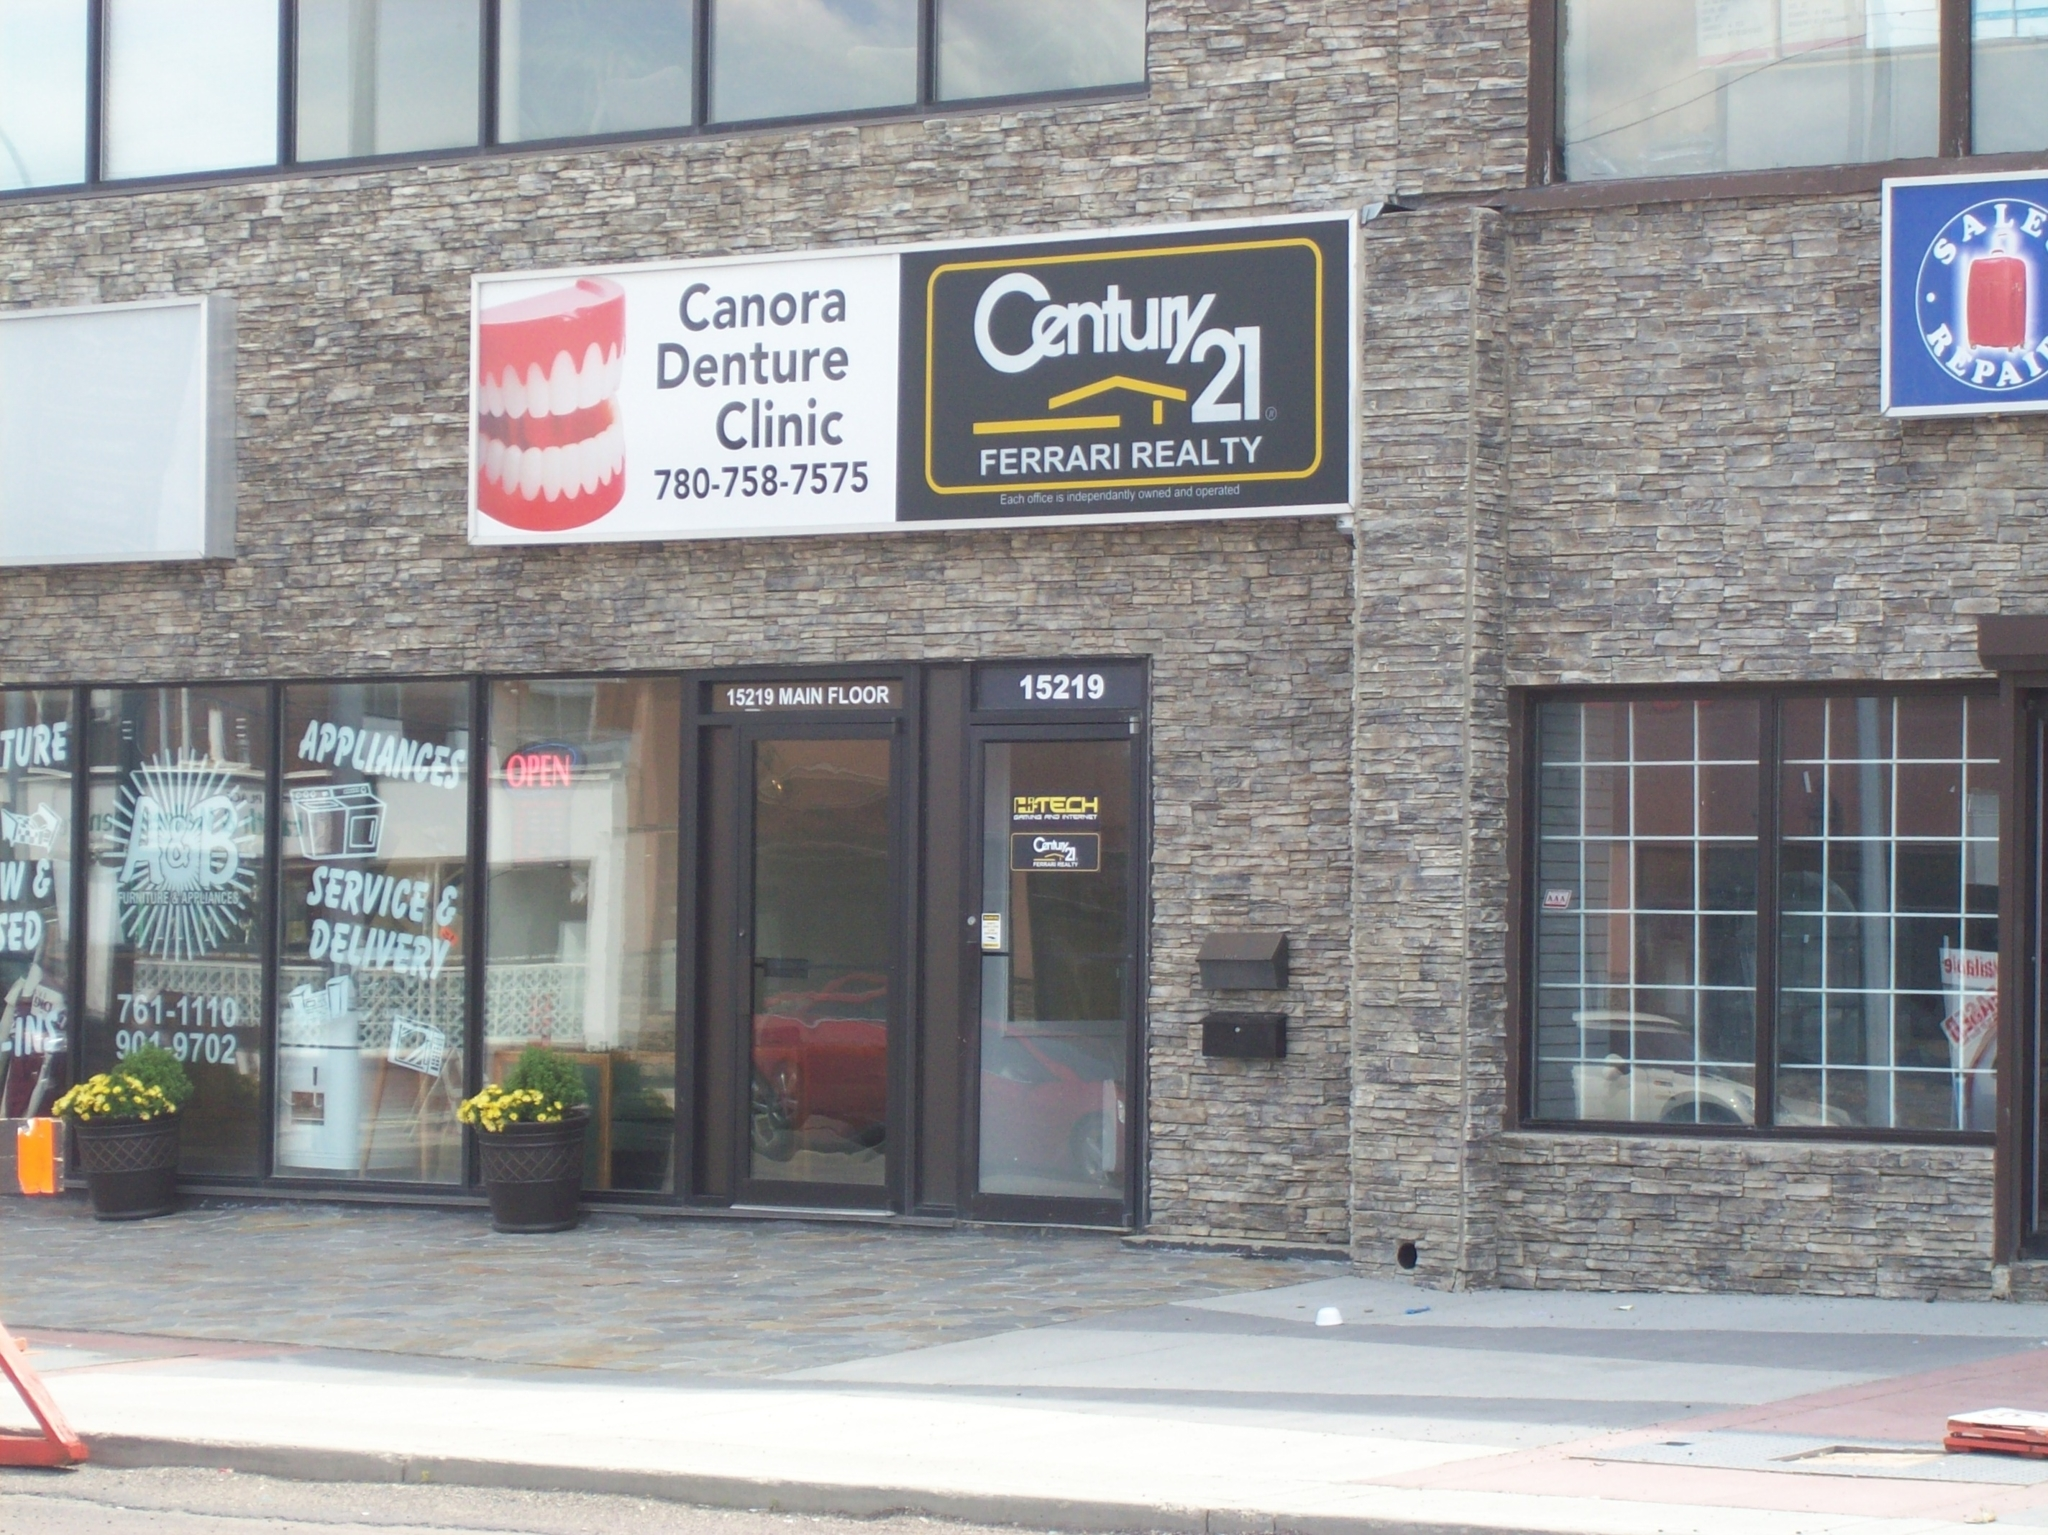 Denture Care Center in AB Edmonton T5P 3Y4 Canora Denture Clinic 15219 Stony Plain Rd NW  (780)758-7575